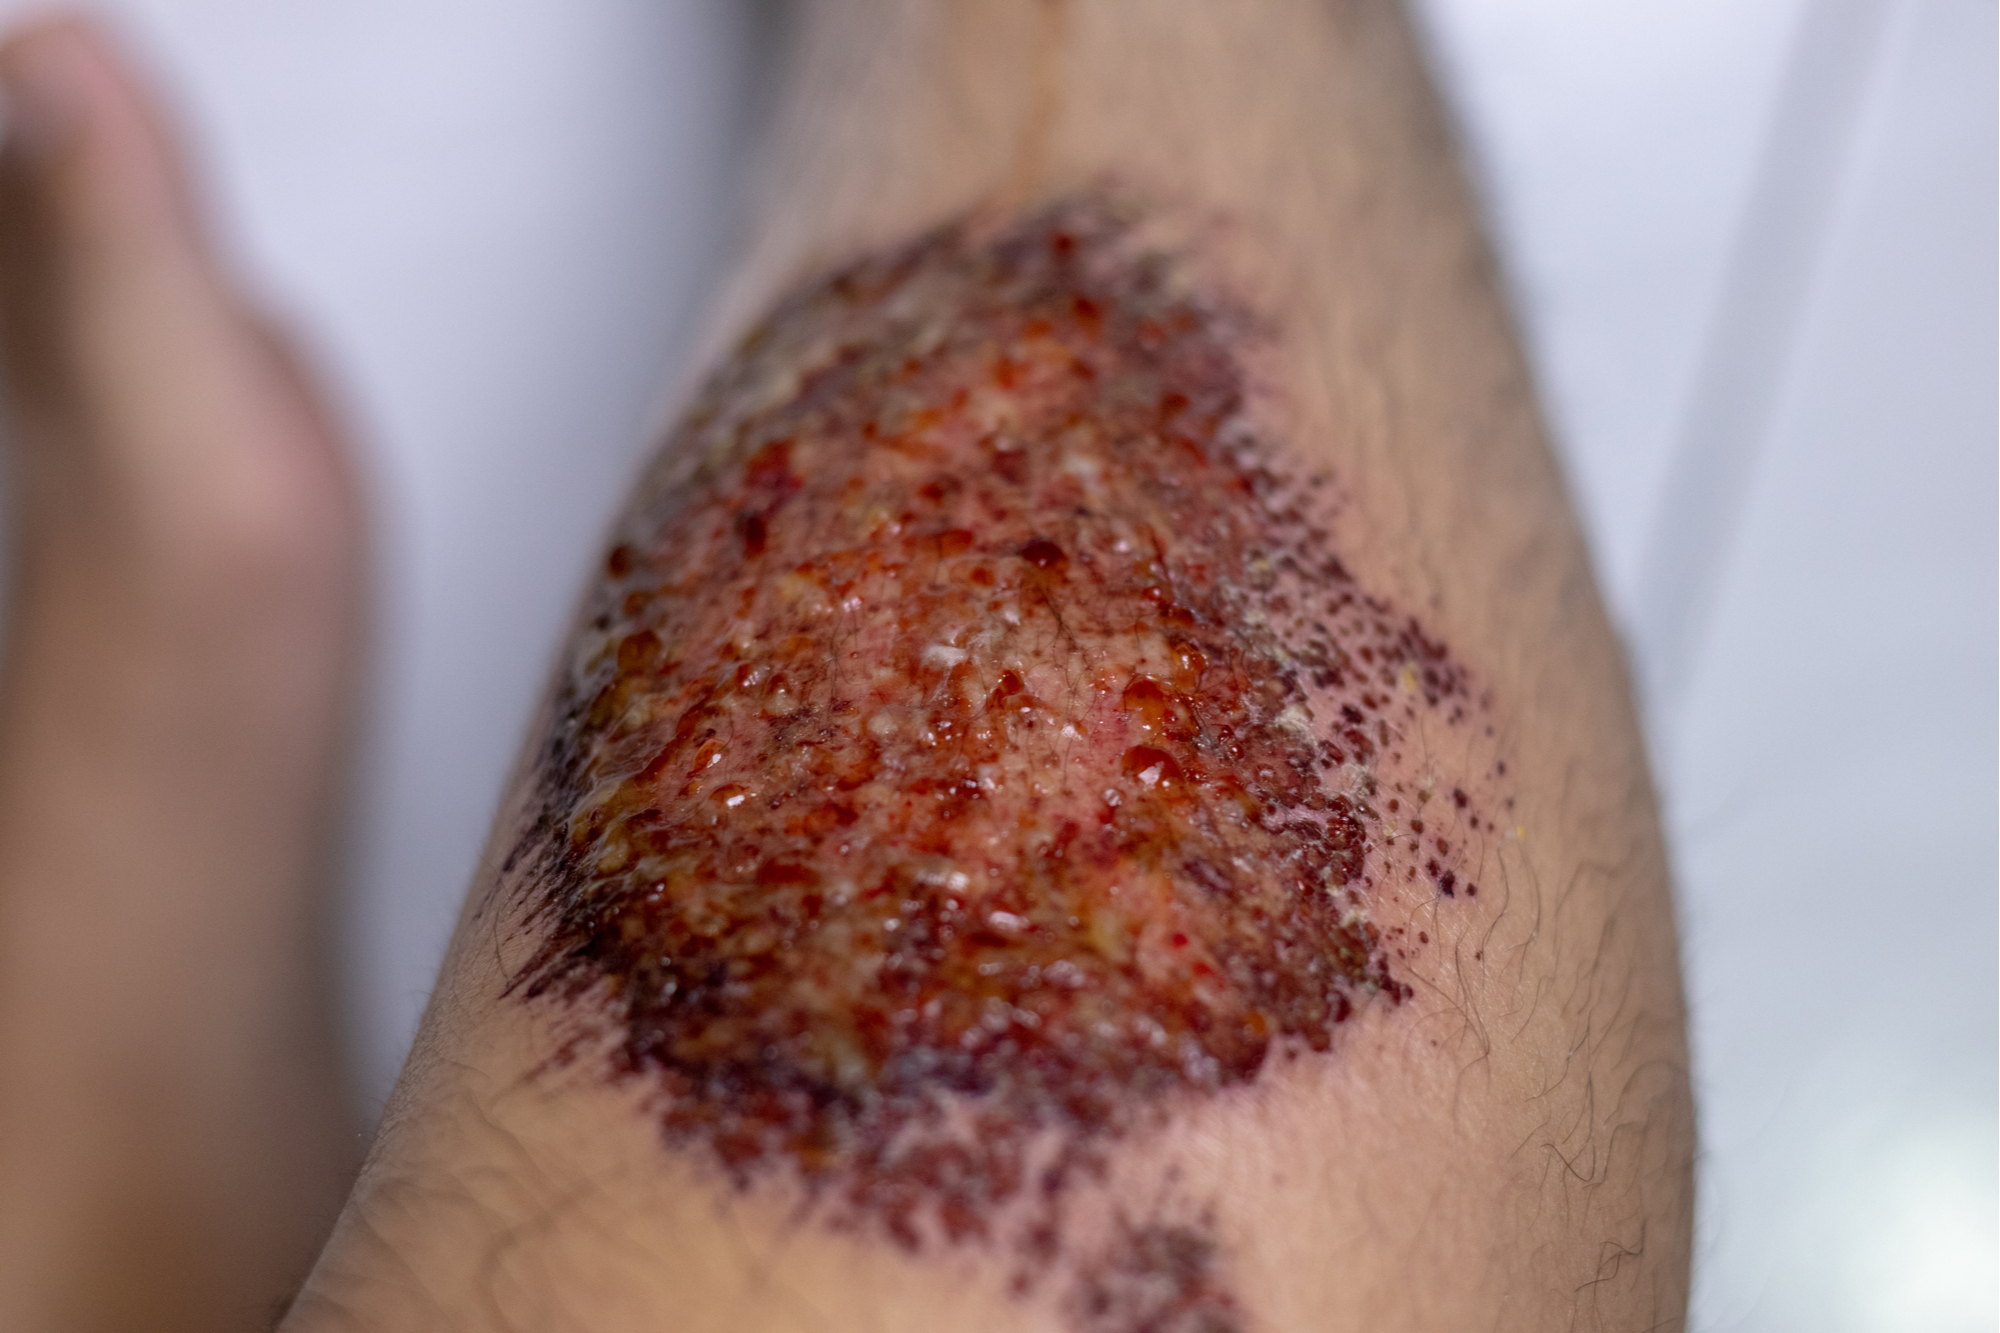 Wound inflicted